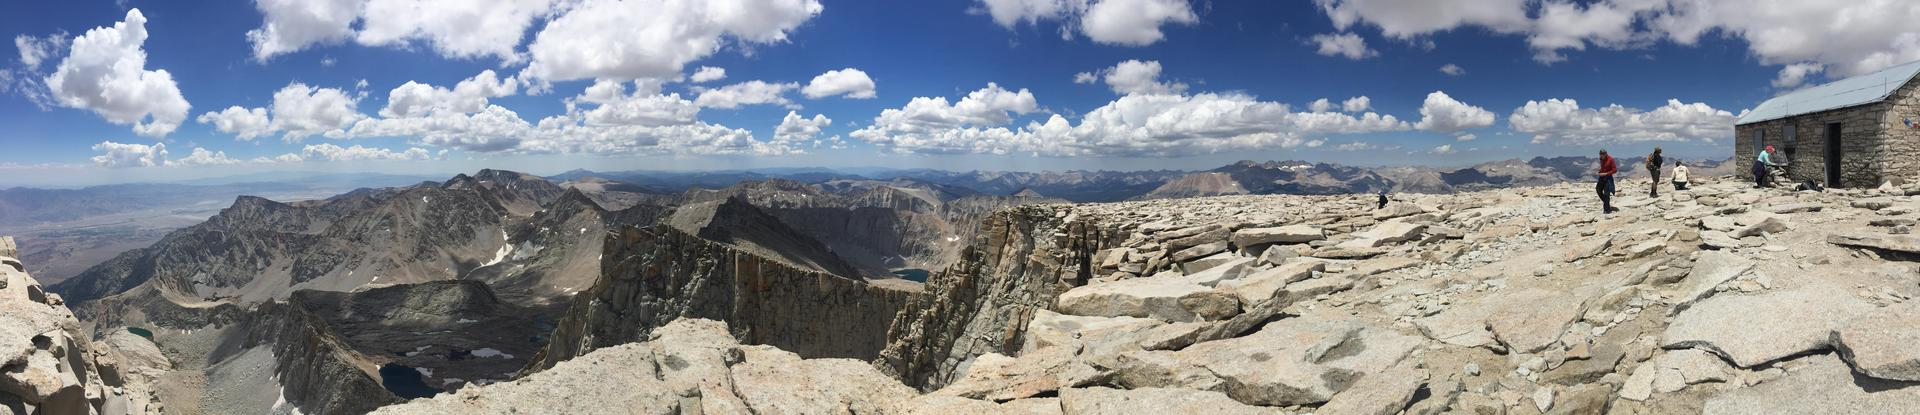 Panoramic View of Mt. Whitney's summit with Hikers and summit hut.